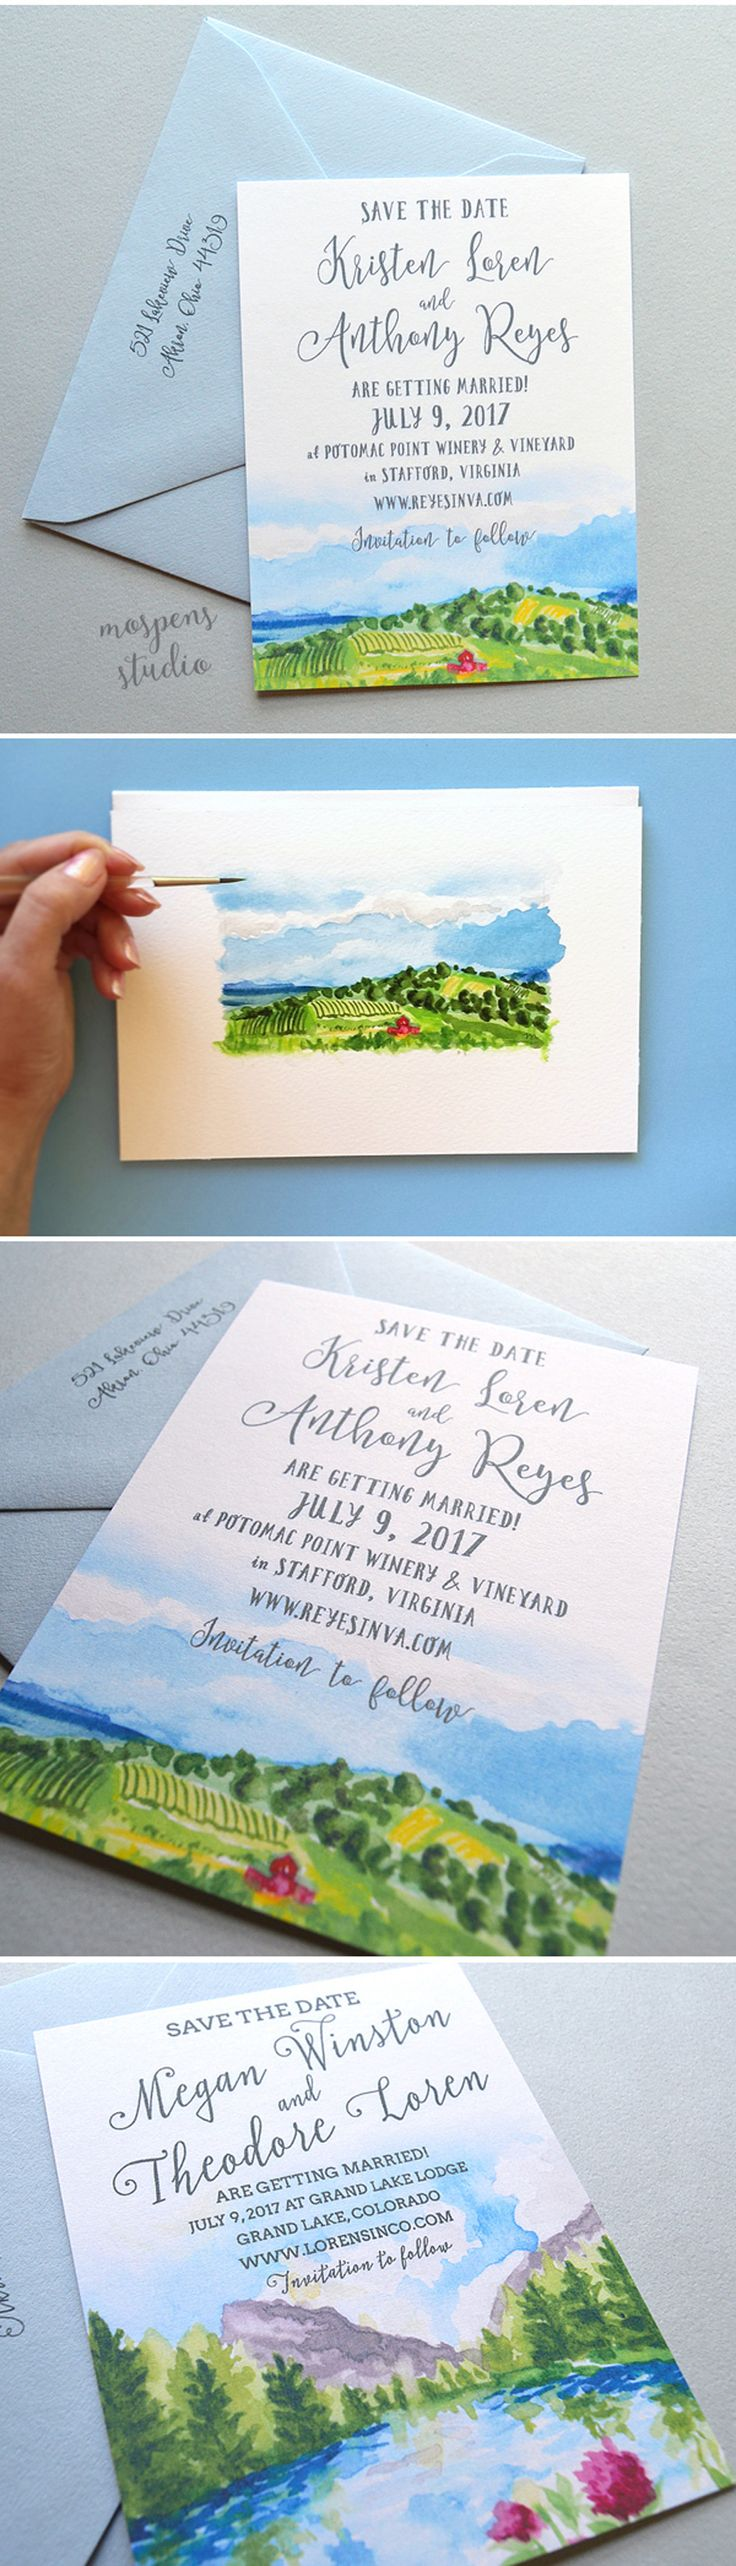 279 Best Pretty Wedding Inspo Images On Pinterest Watercolor